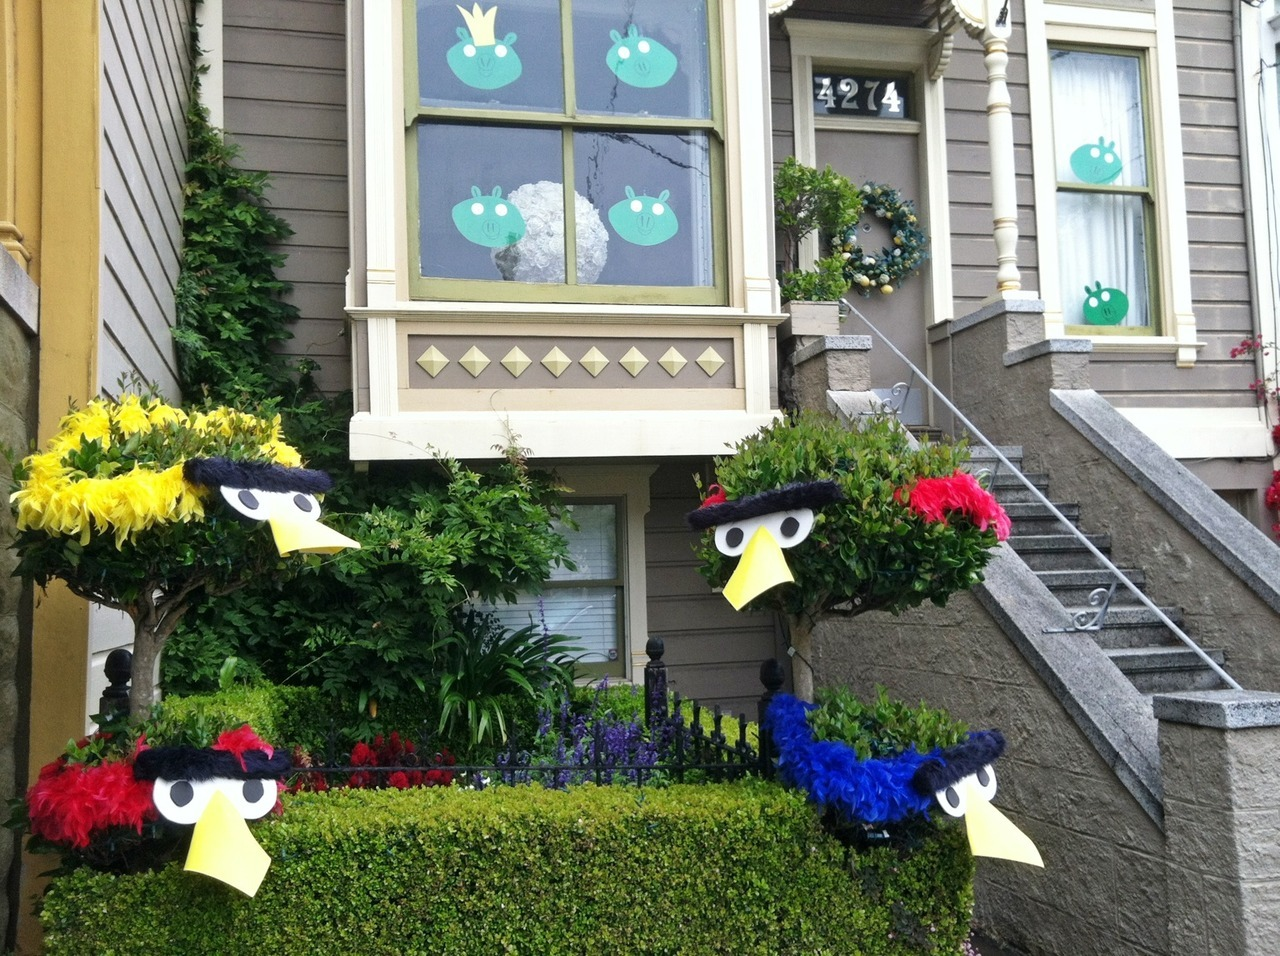 Now these are some Angry Birds fans in Noe Valley.